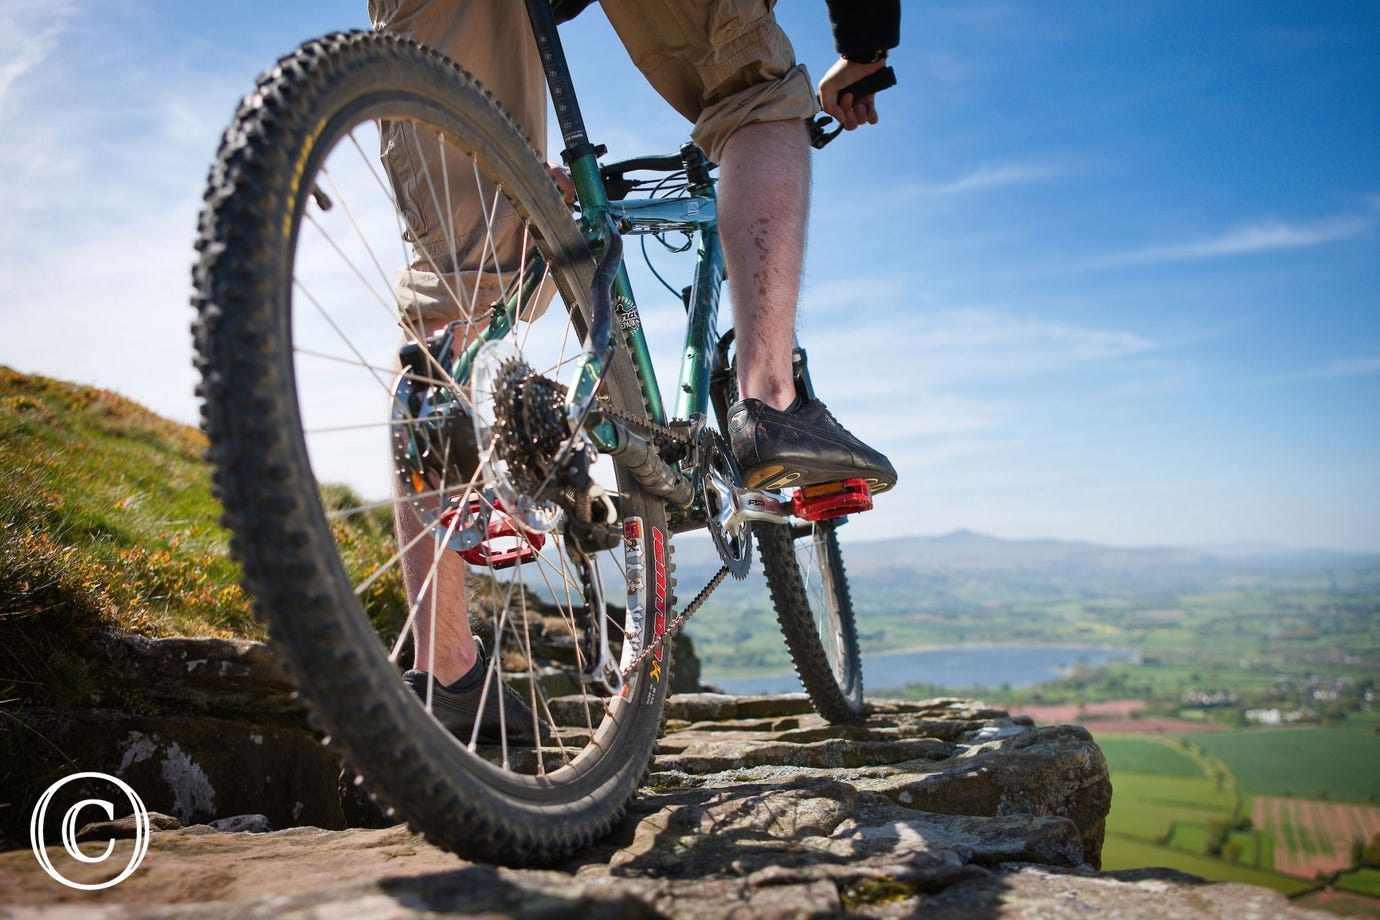 Great mountain biking in the Beacons and at Bike Park Wales